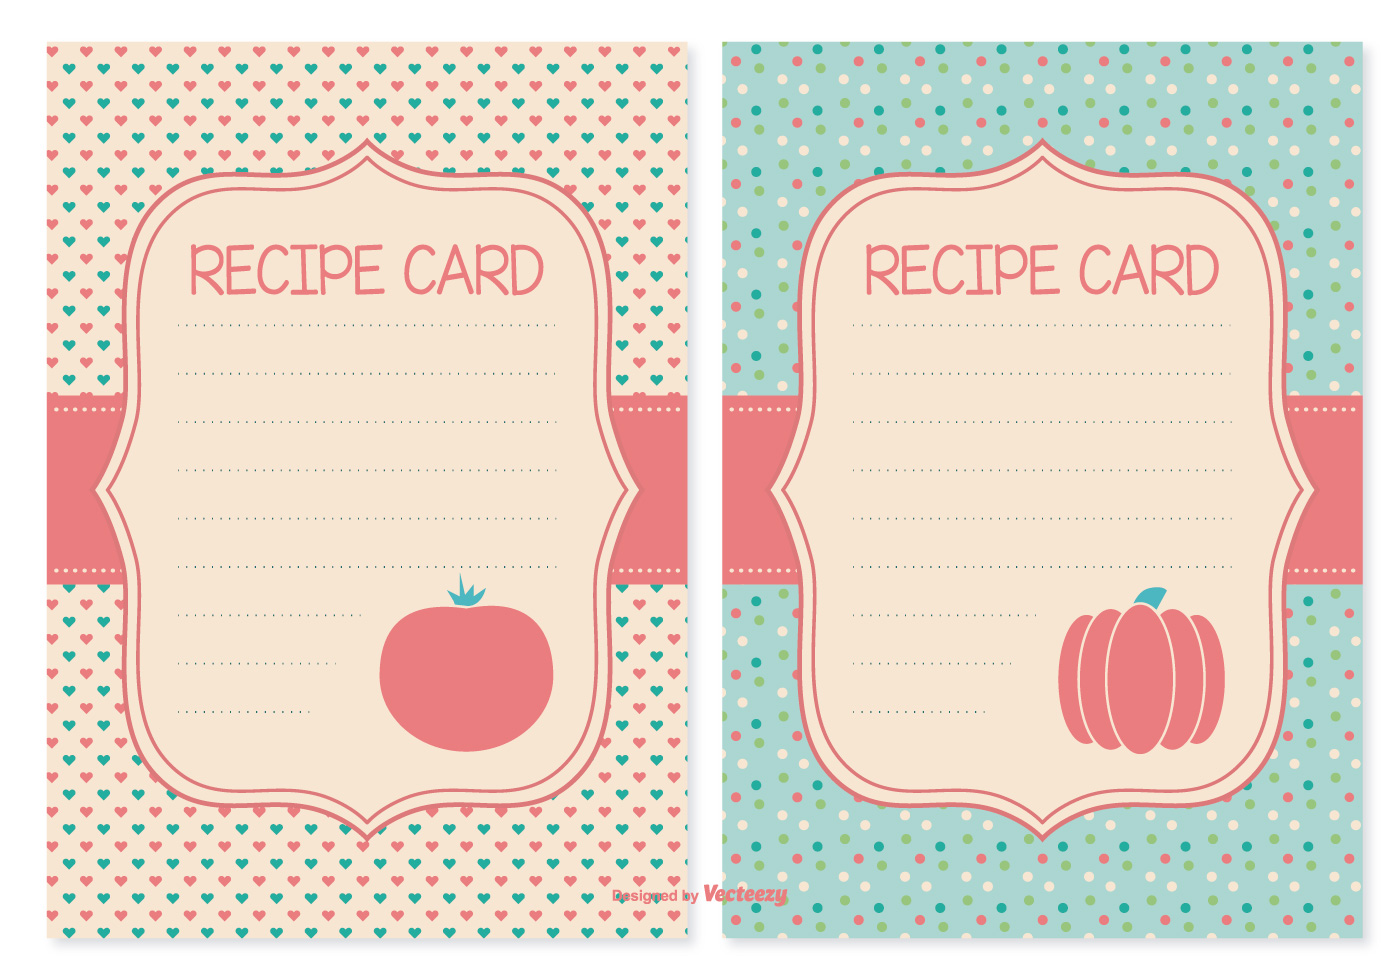 It's just a graphic of Old Fashioned Cute Recipe Cards